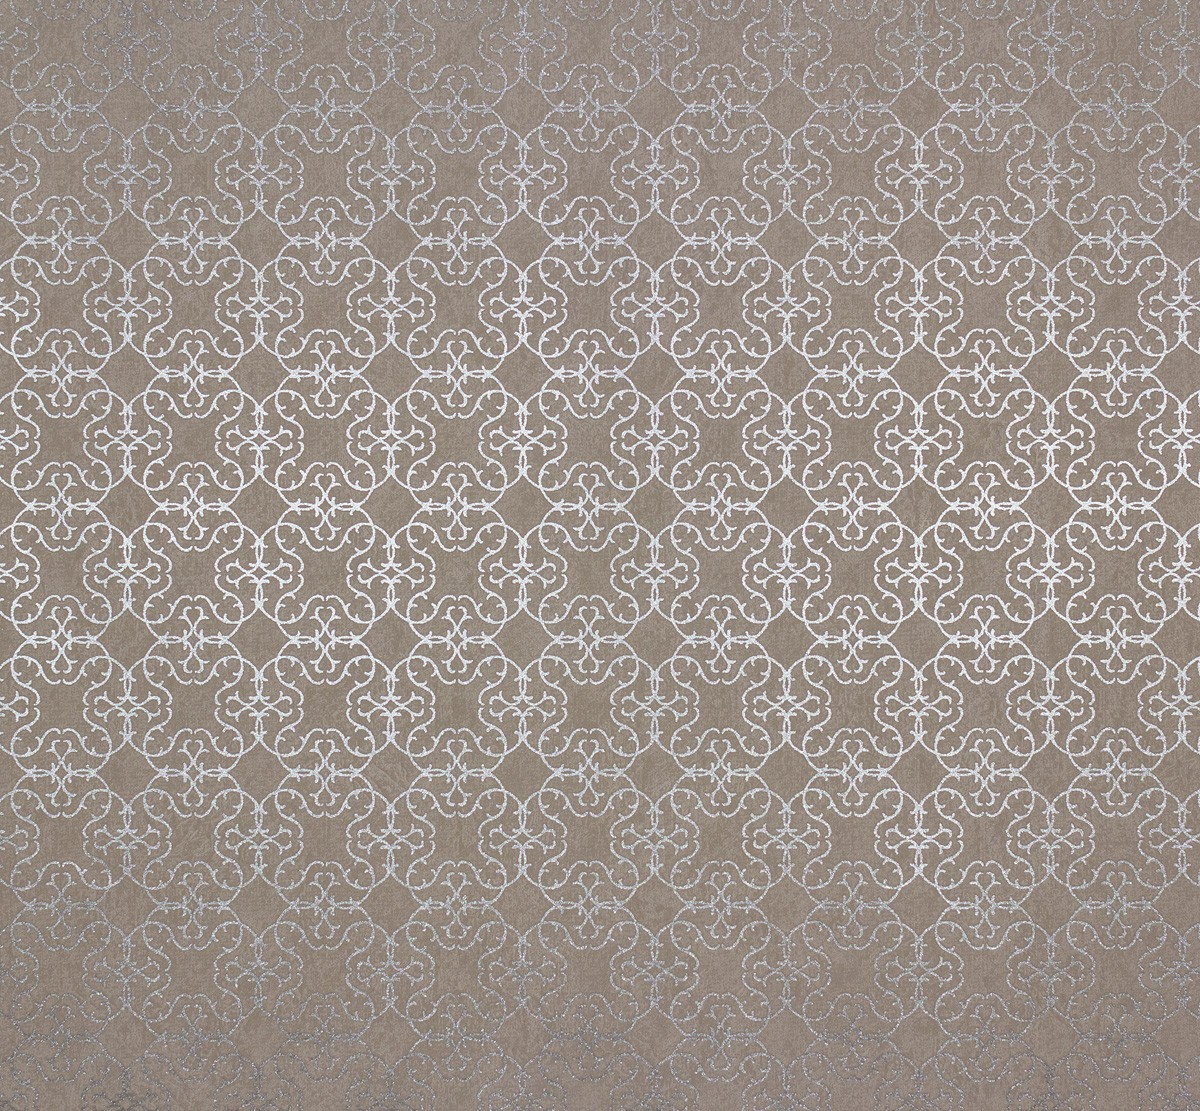 Non woven wallpaper design pattern taupe marburg 55704 for Tapete grau gestreift